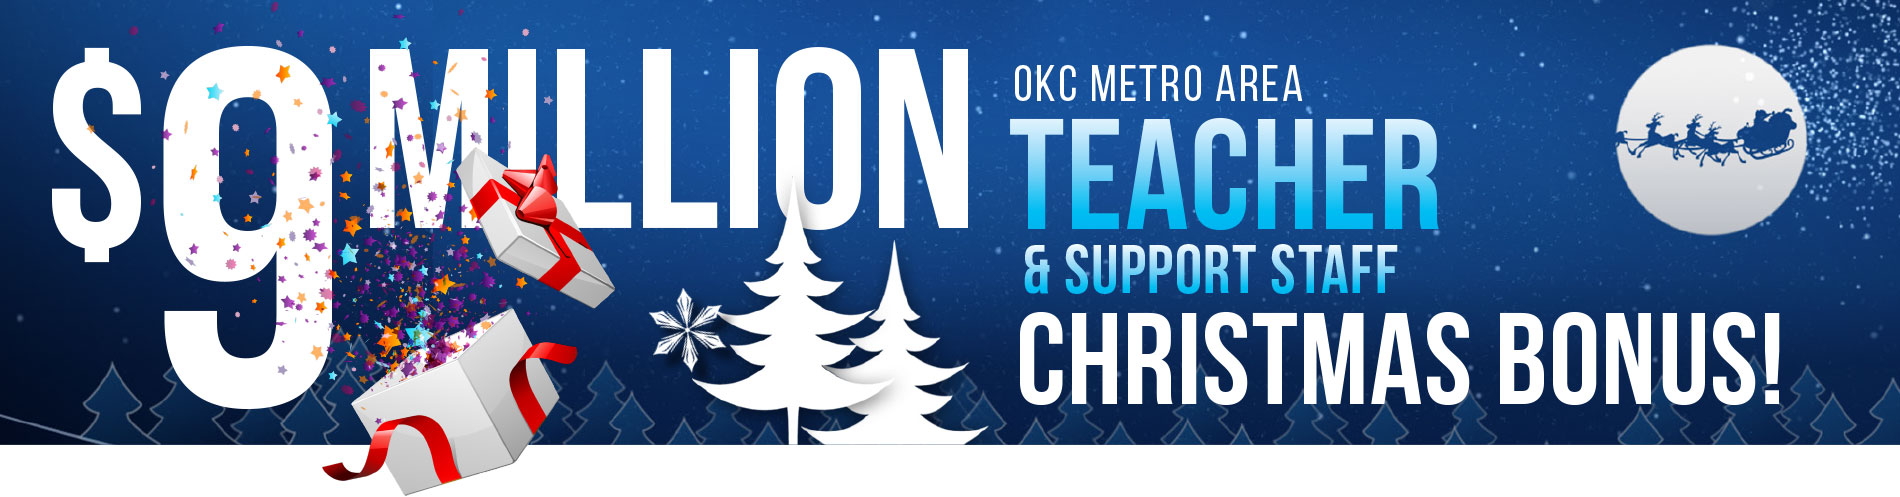 $9 million OKC Metro teacher & support staff Christmas Bonus